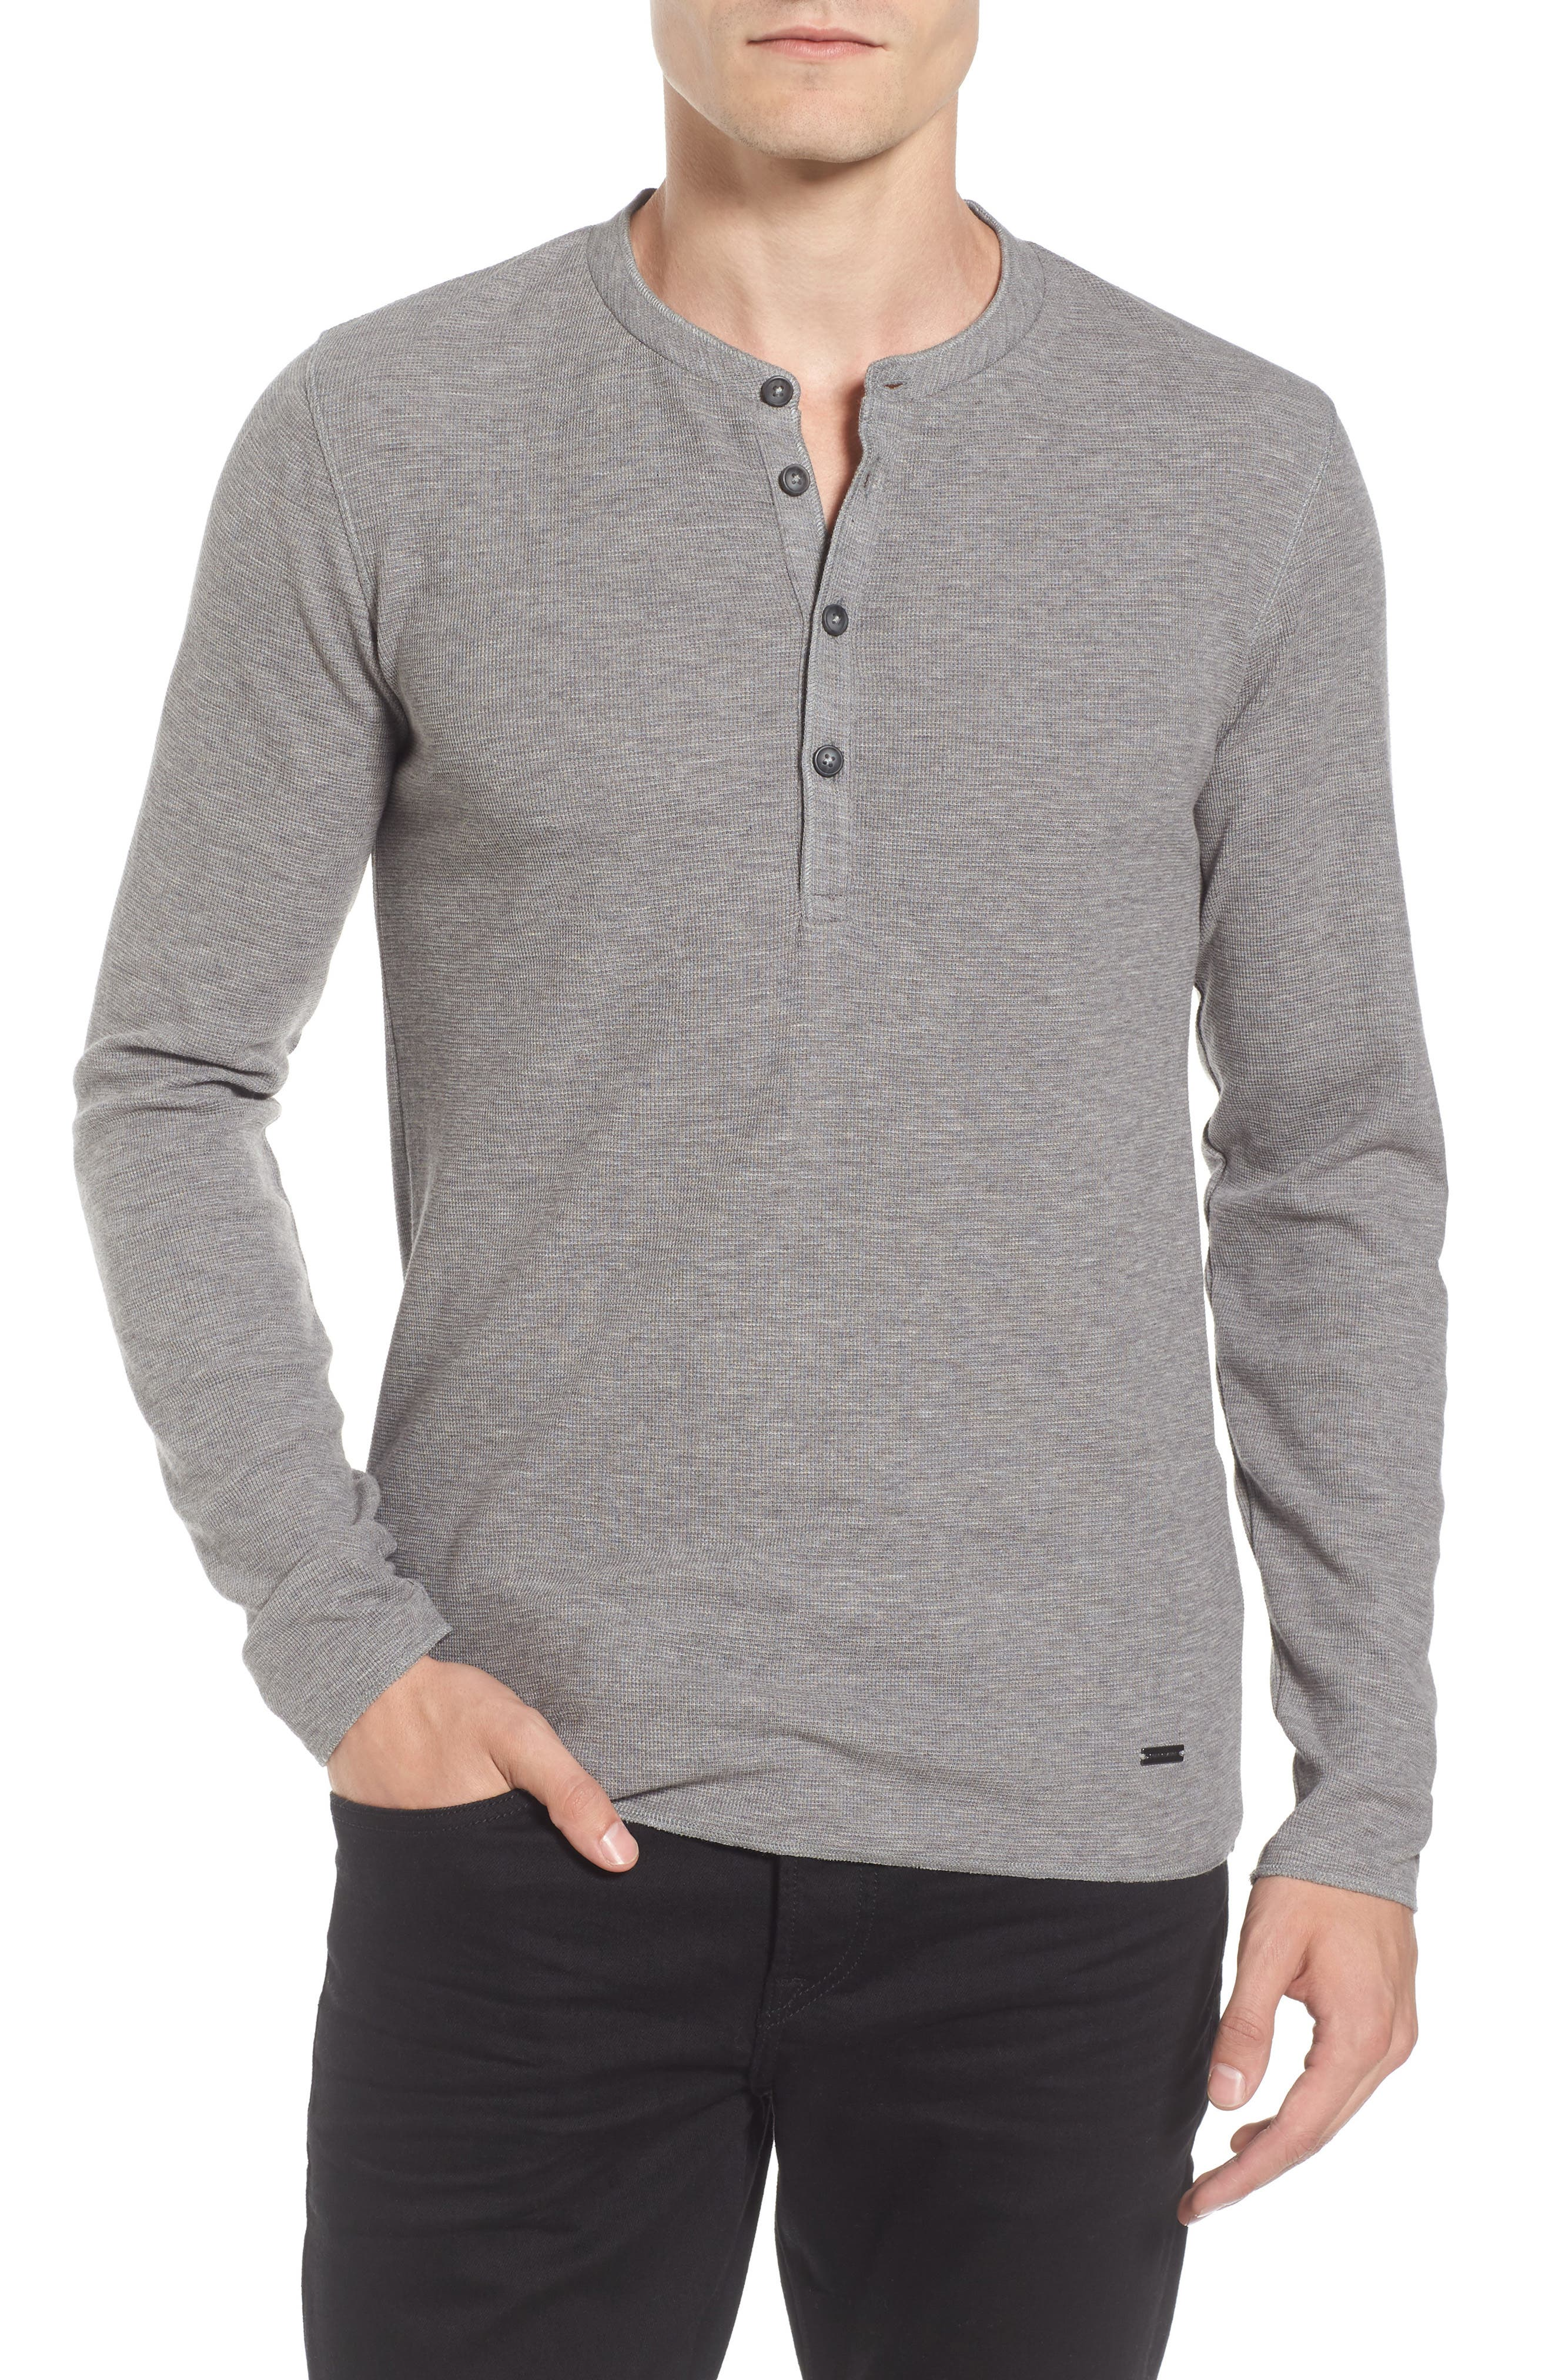 Topsider Thermal Henley,                         Main,                         color, 051